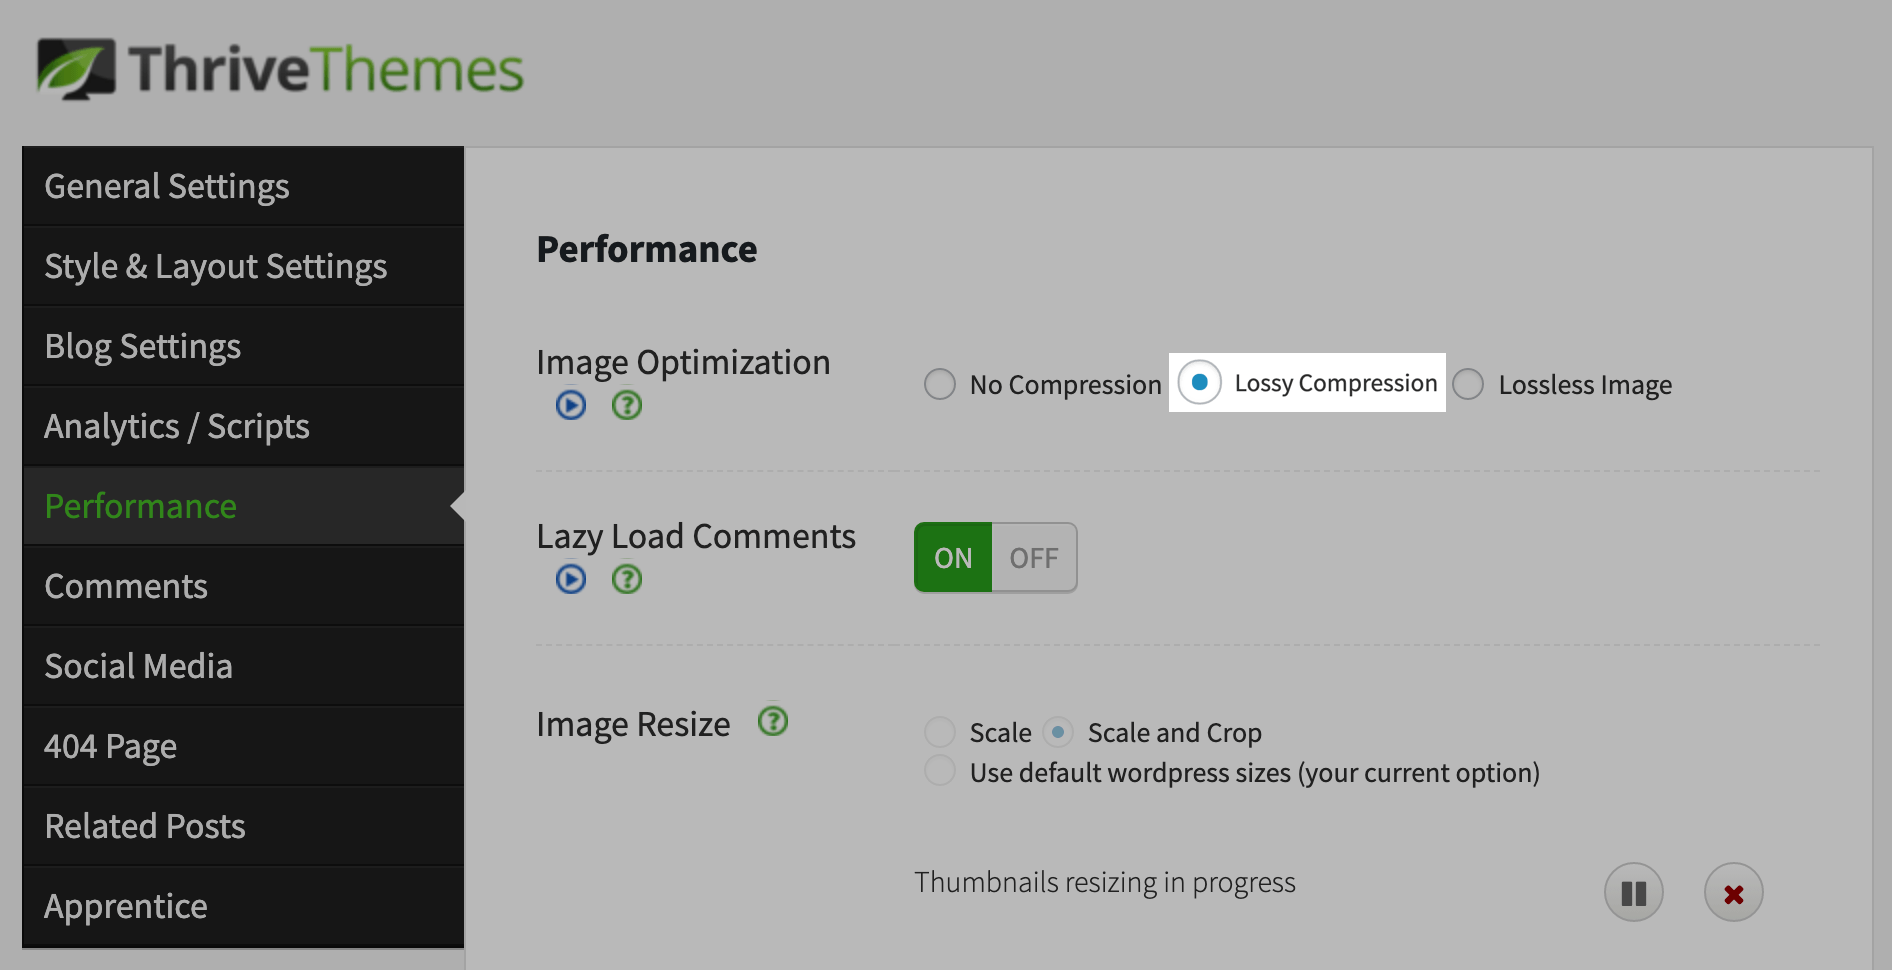 thrive themes lossy compression image